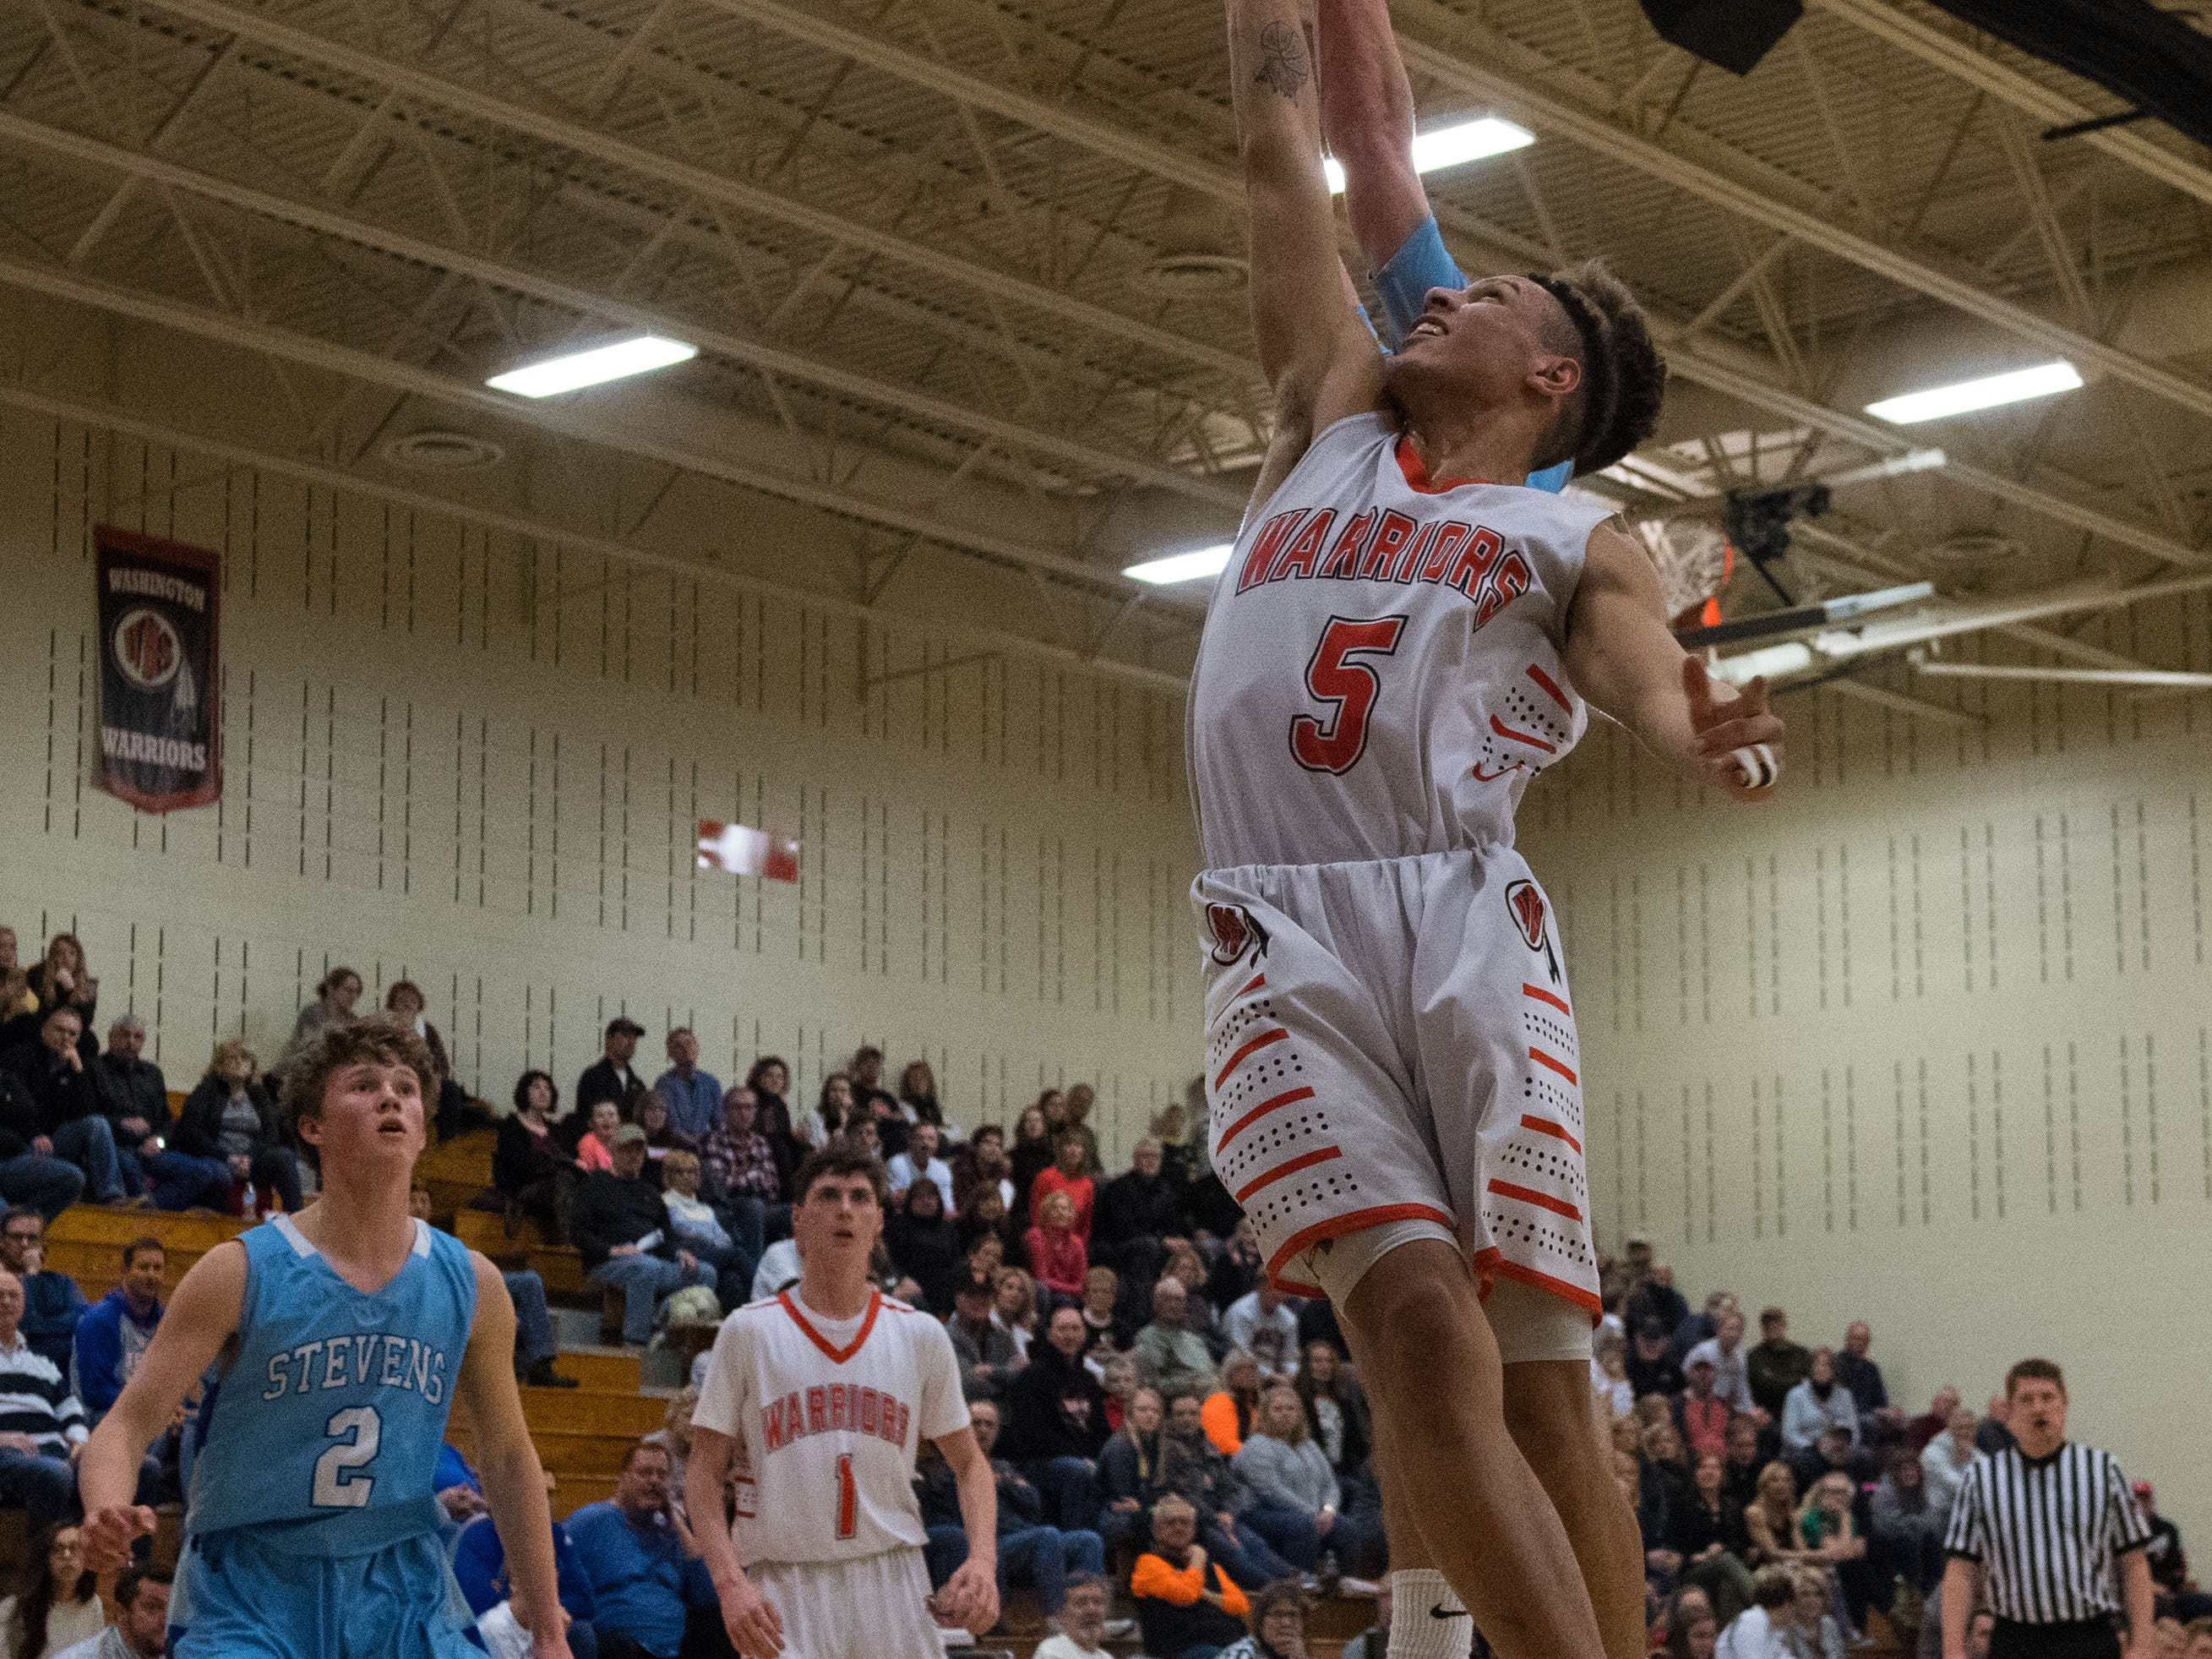 Washington's Eli Williams (5) goes up for the ball during a game against Rapid City Stevens' in Sioux Falls, S.D., Thursday, Feb. 7, 2019.